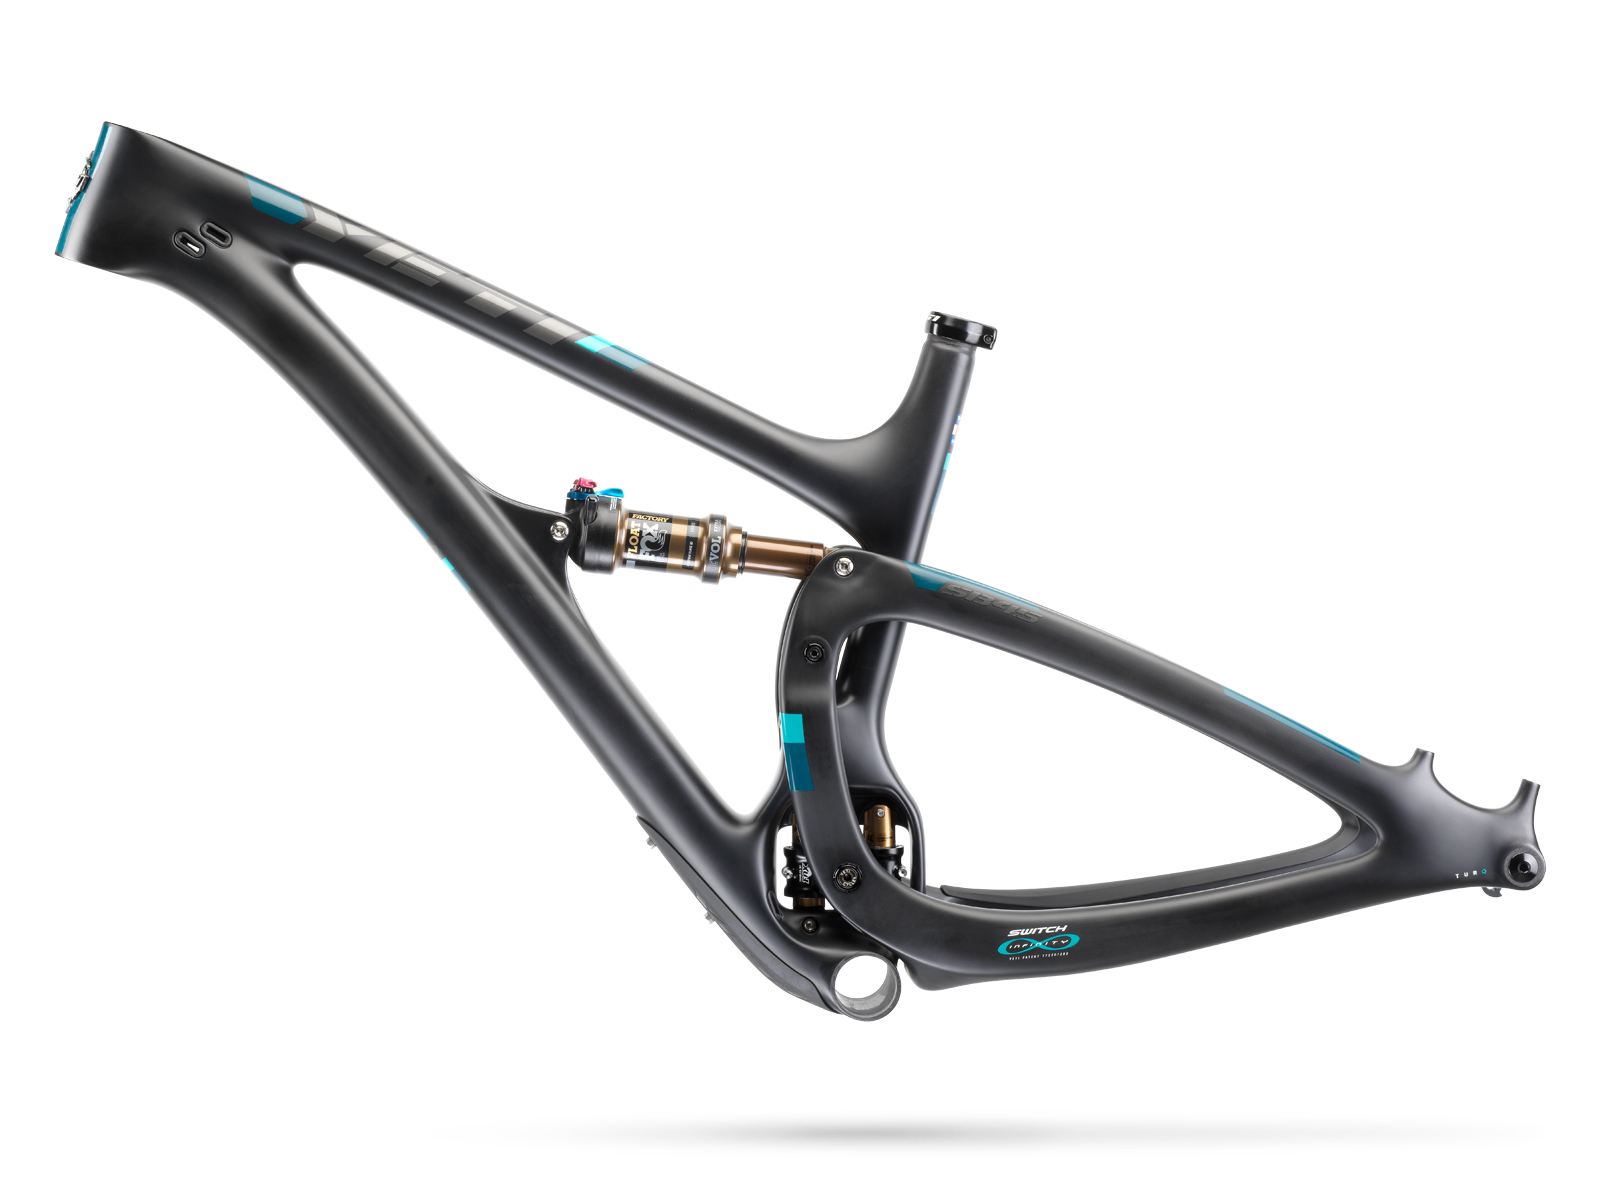 16002018_YetiCycles_Frame_SB45_TS_Black_01